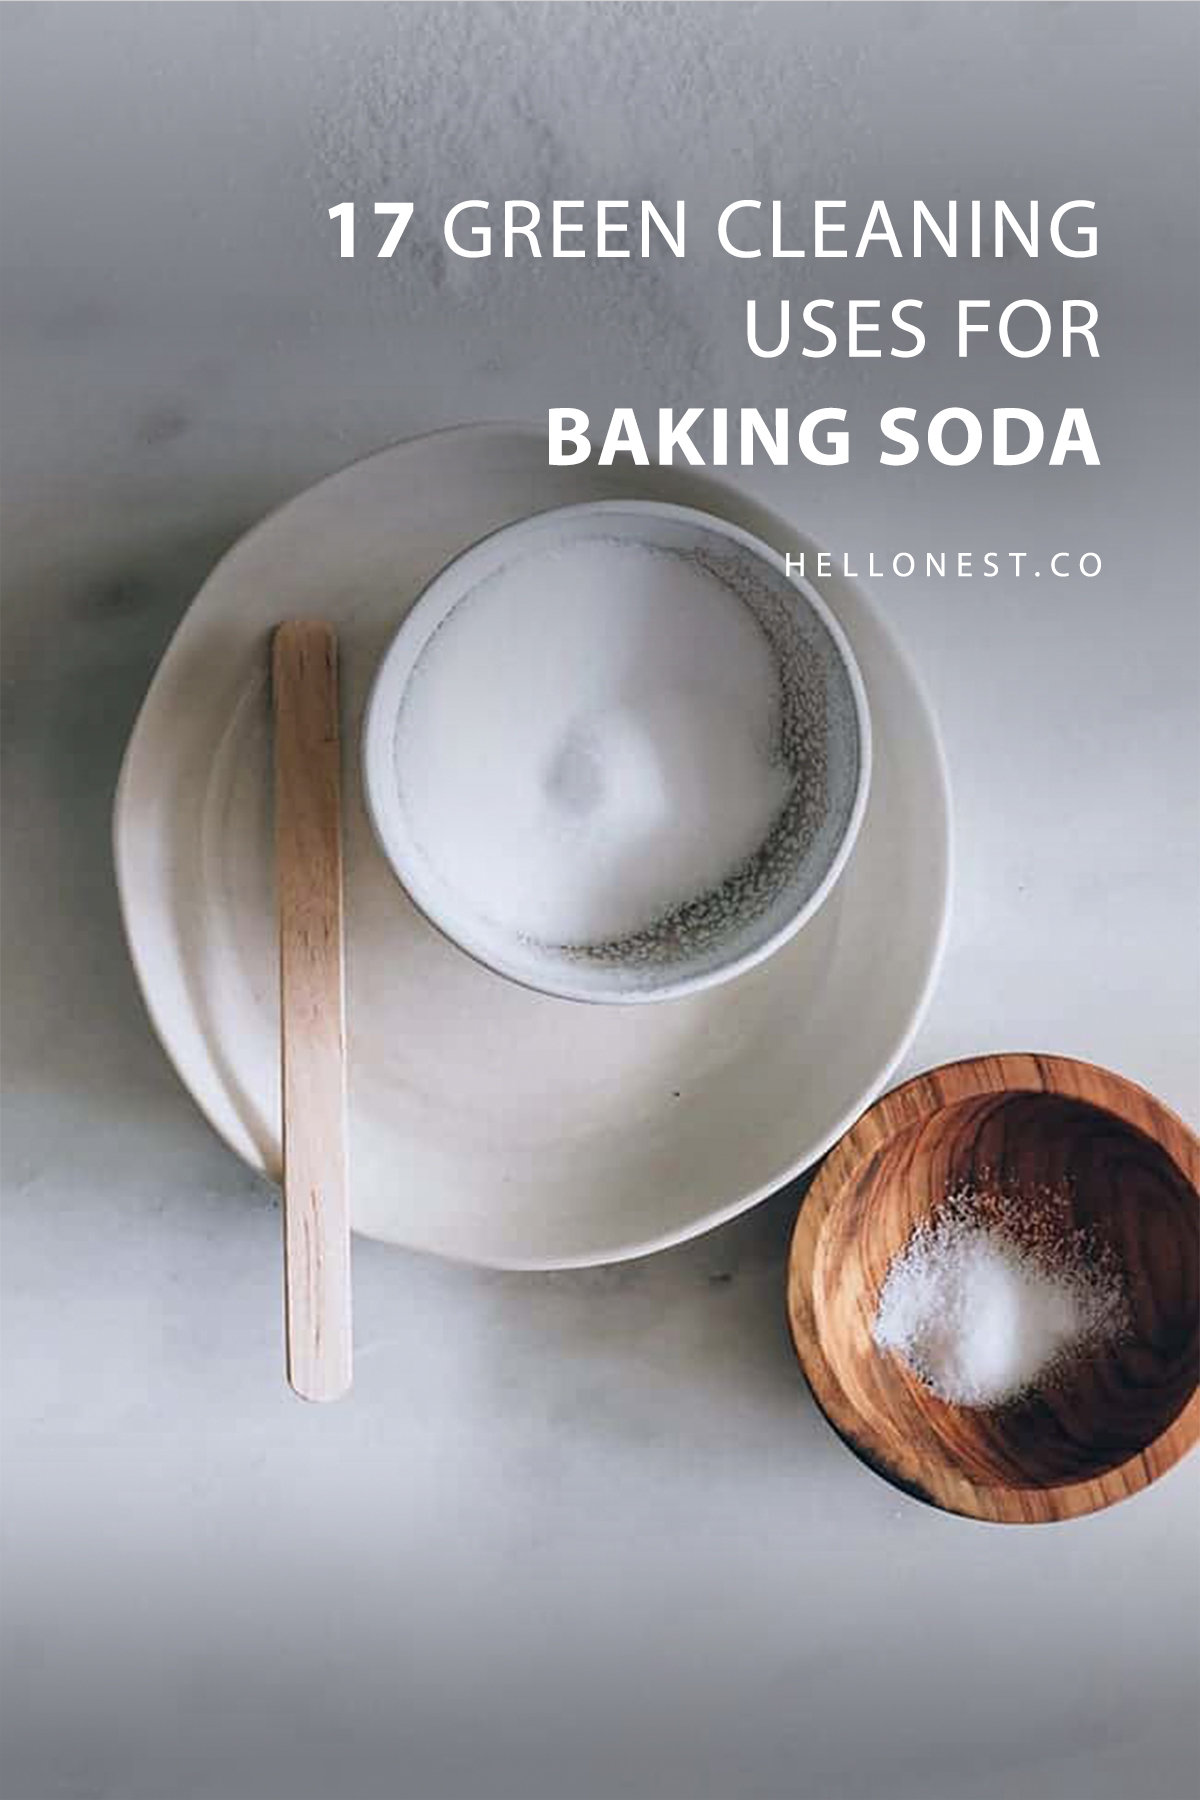 17 Ways to Clean with Baking Soda